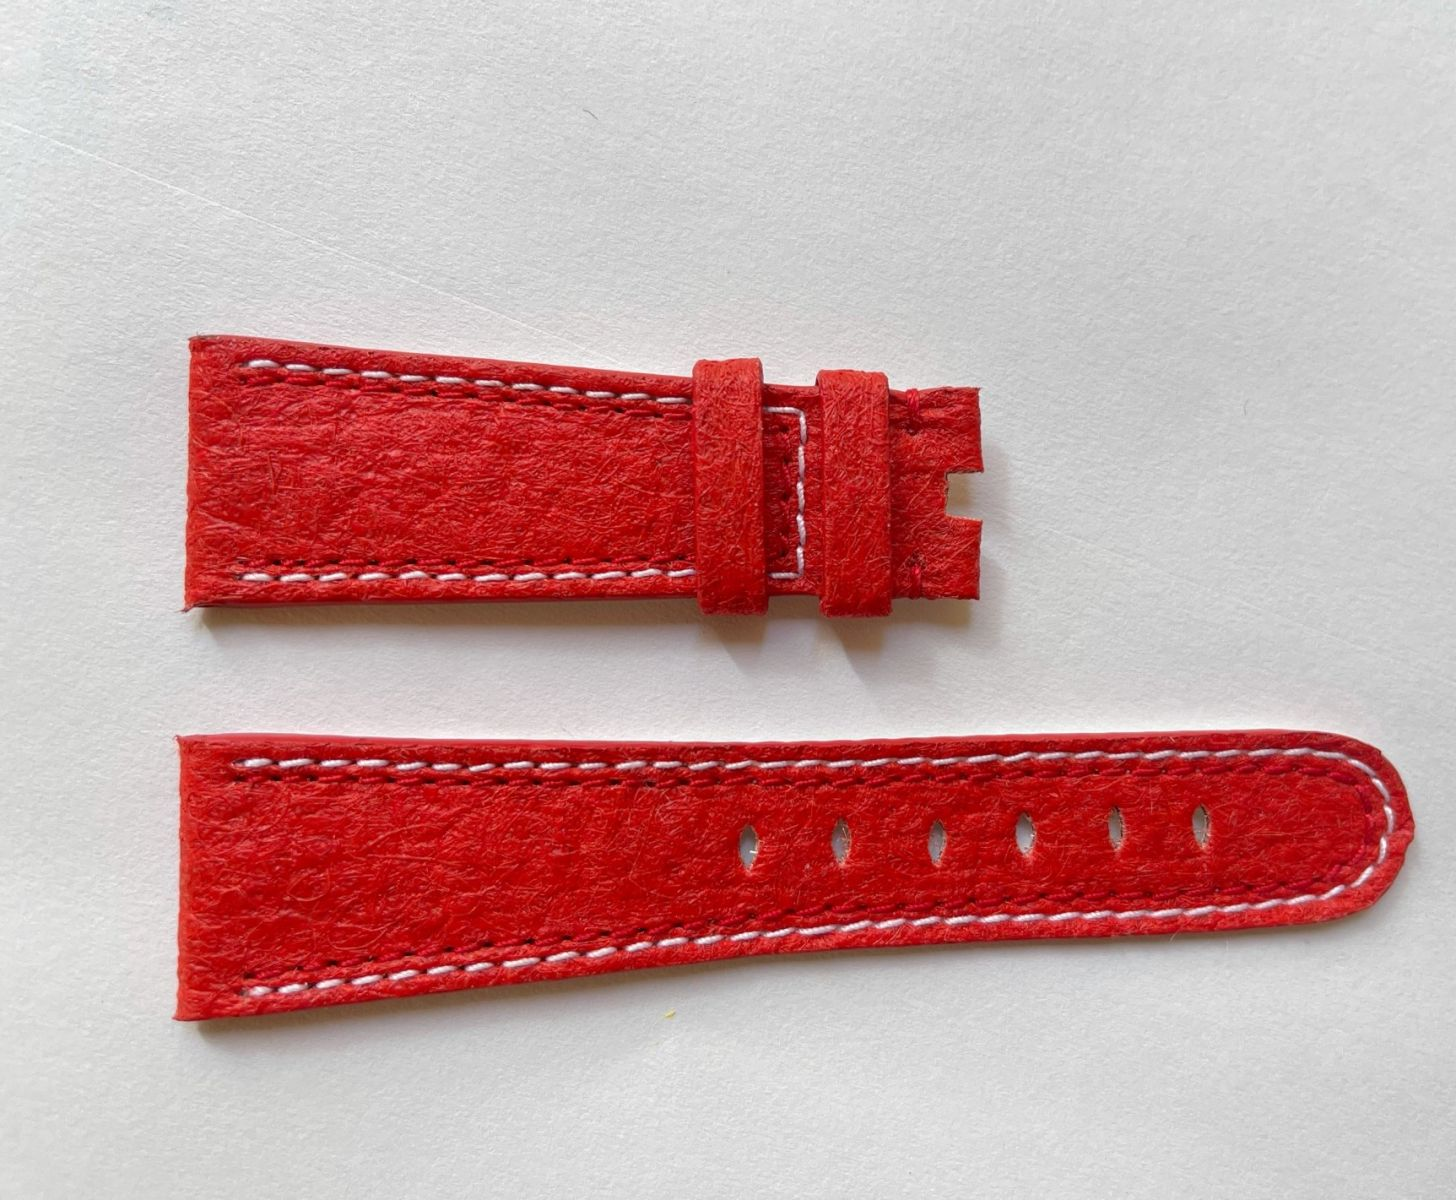 Red Paprika Pinatex Strap 16mm, 18mm, 19mm, 20mm, 21mm, 22mm General style. Double stitching